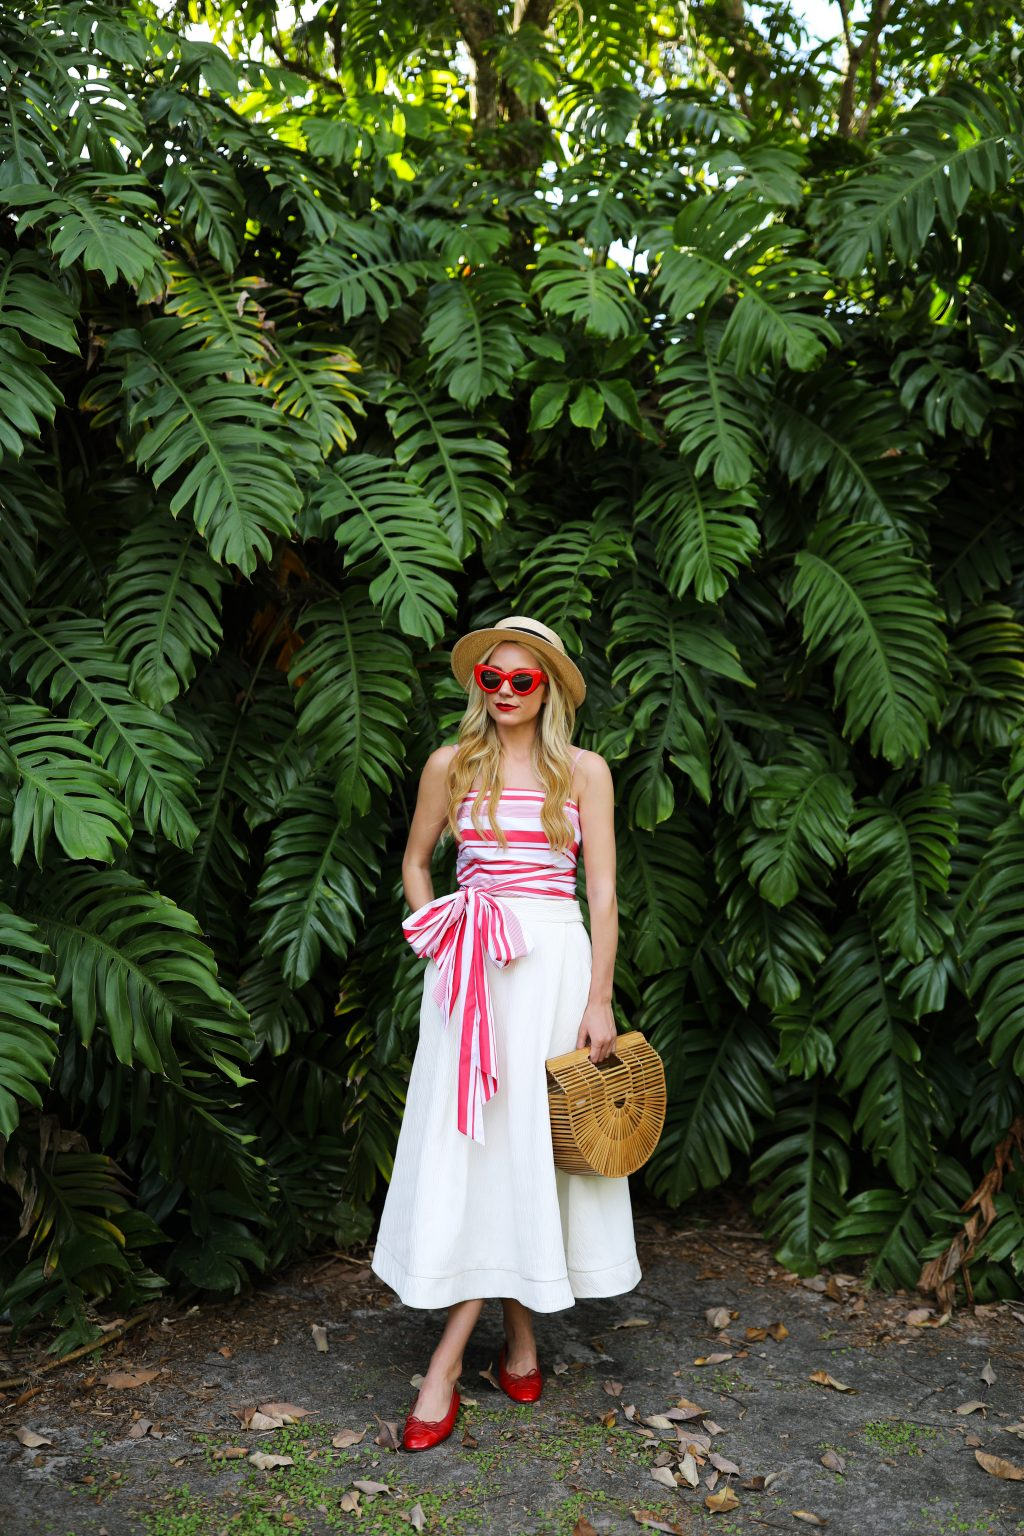 mds-stripes-outfit-florida-cult-gaia-chanel-flats-red-white-stripes